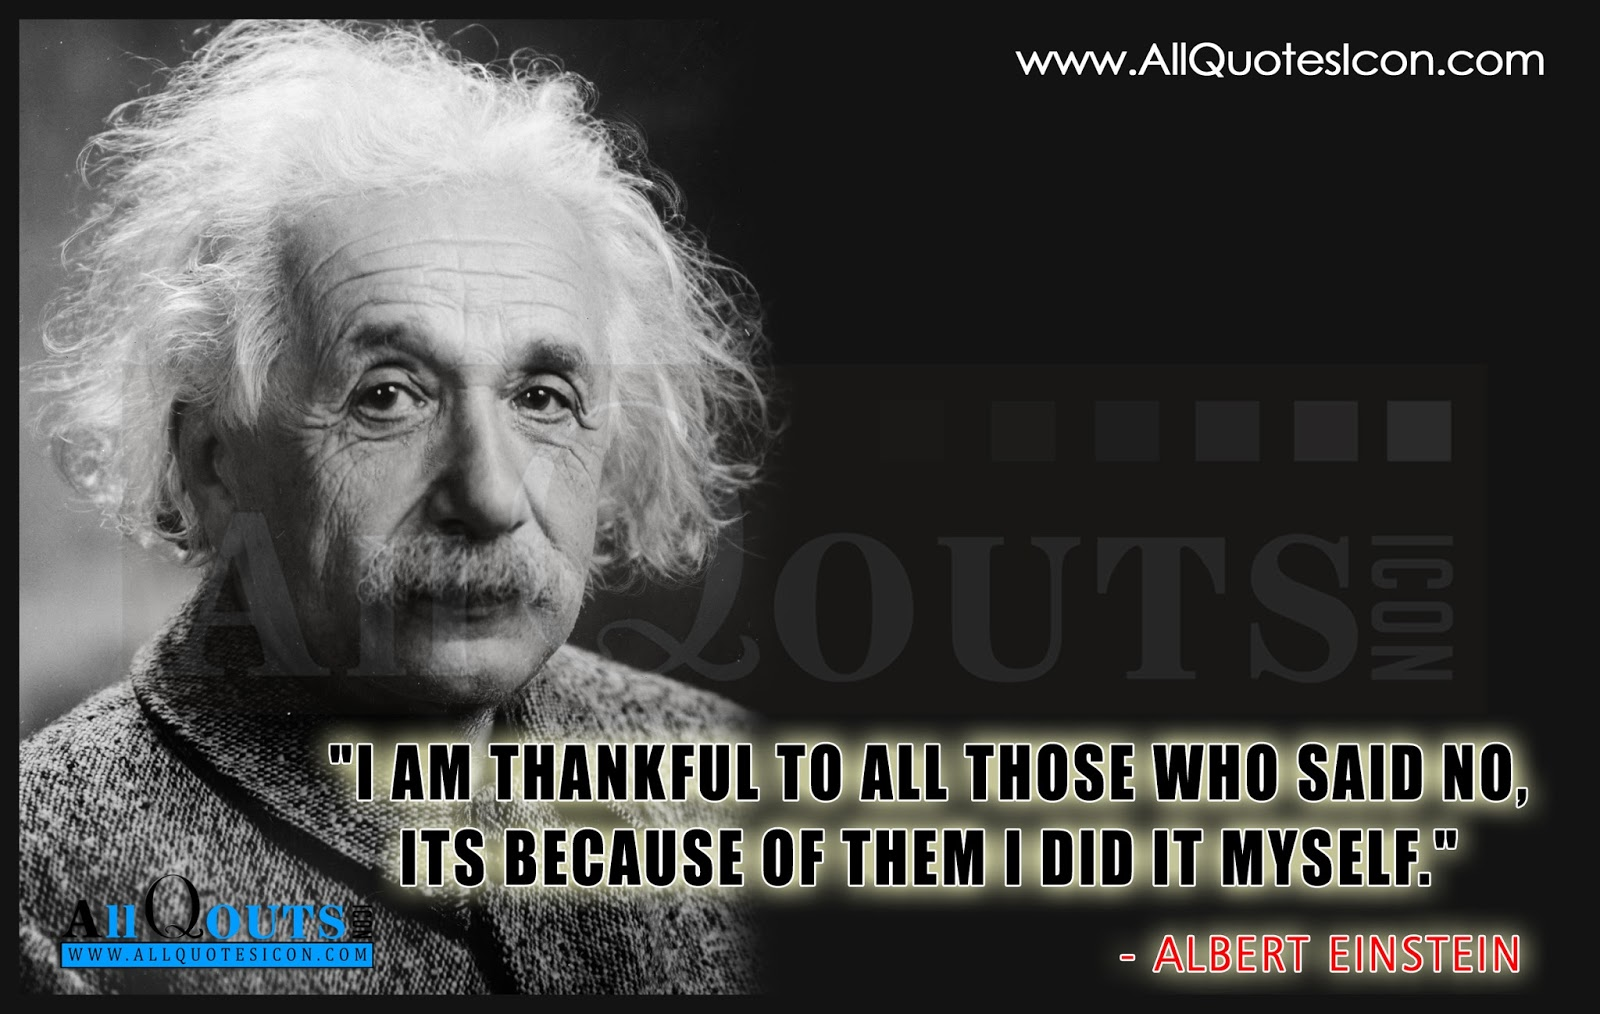 Albert Einstein Quotes And Thoughts In English Www